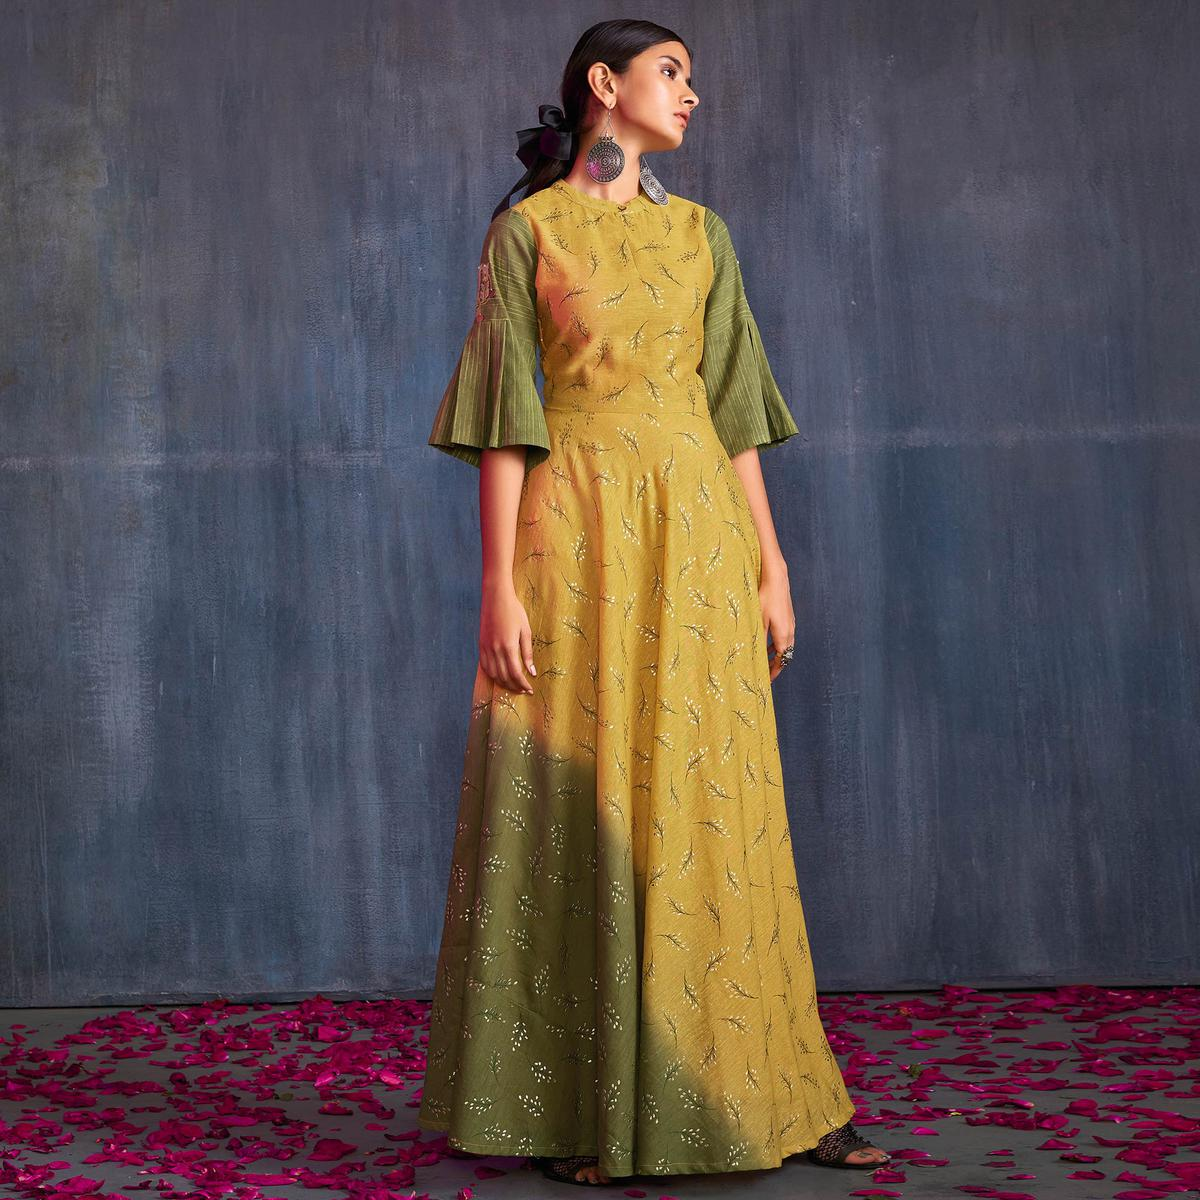 Groovy Yellow-Green Colored Partywear Embroidered Viscose Gown